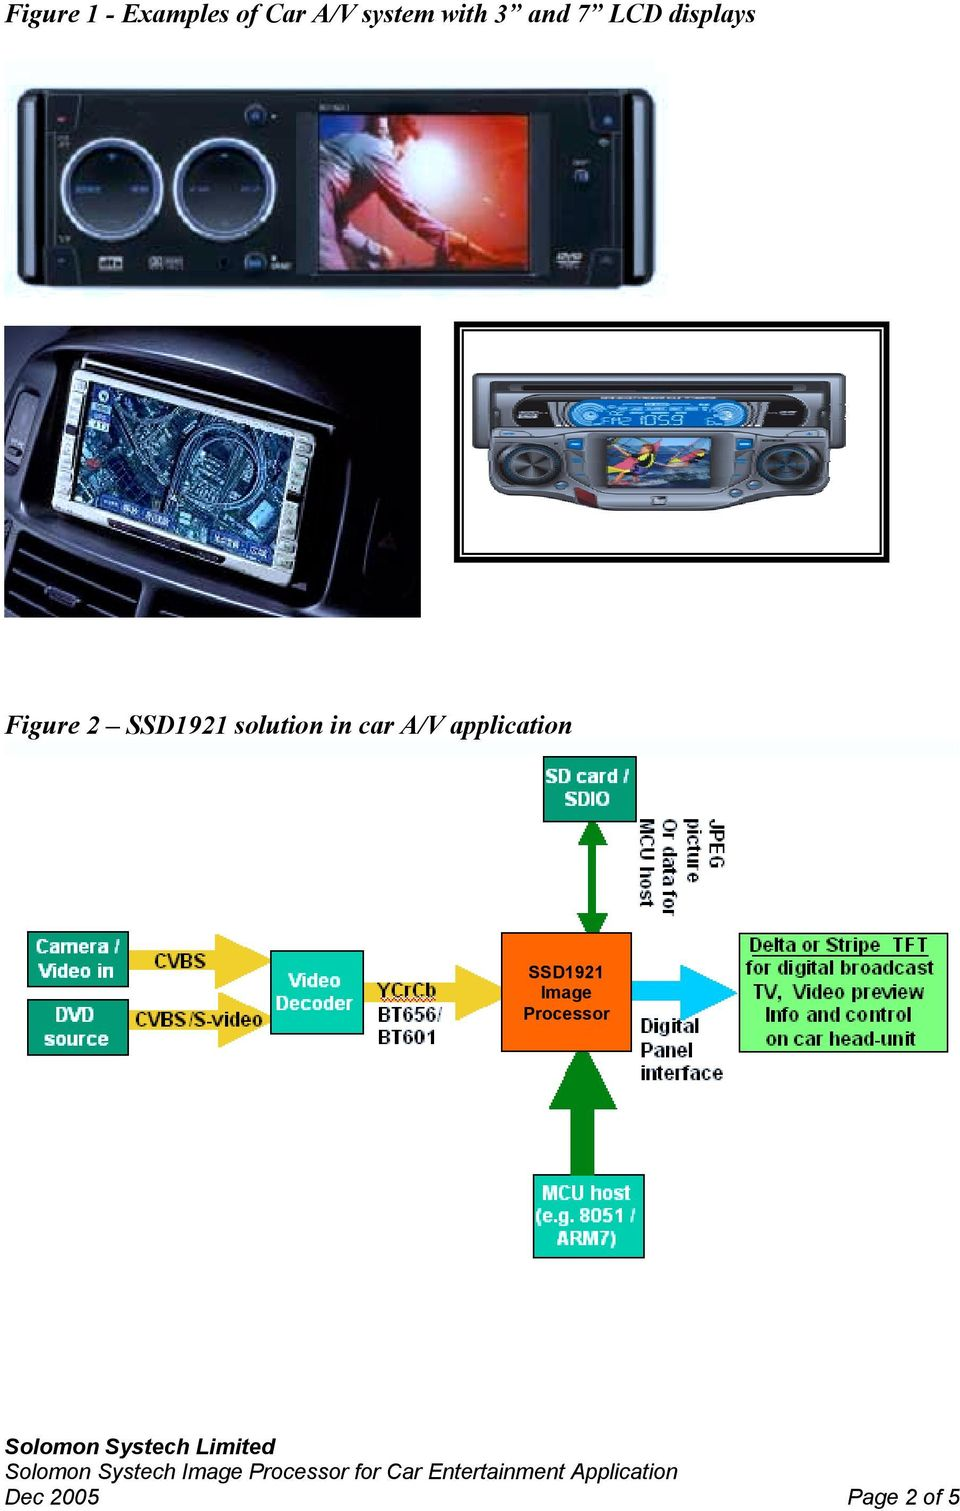 SSD1921 solution in car A/V application